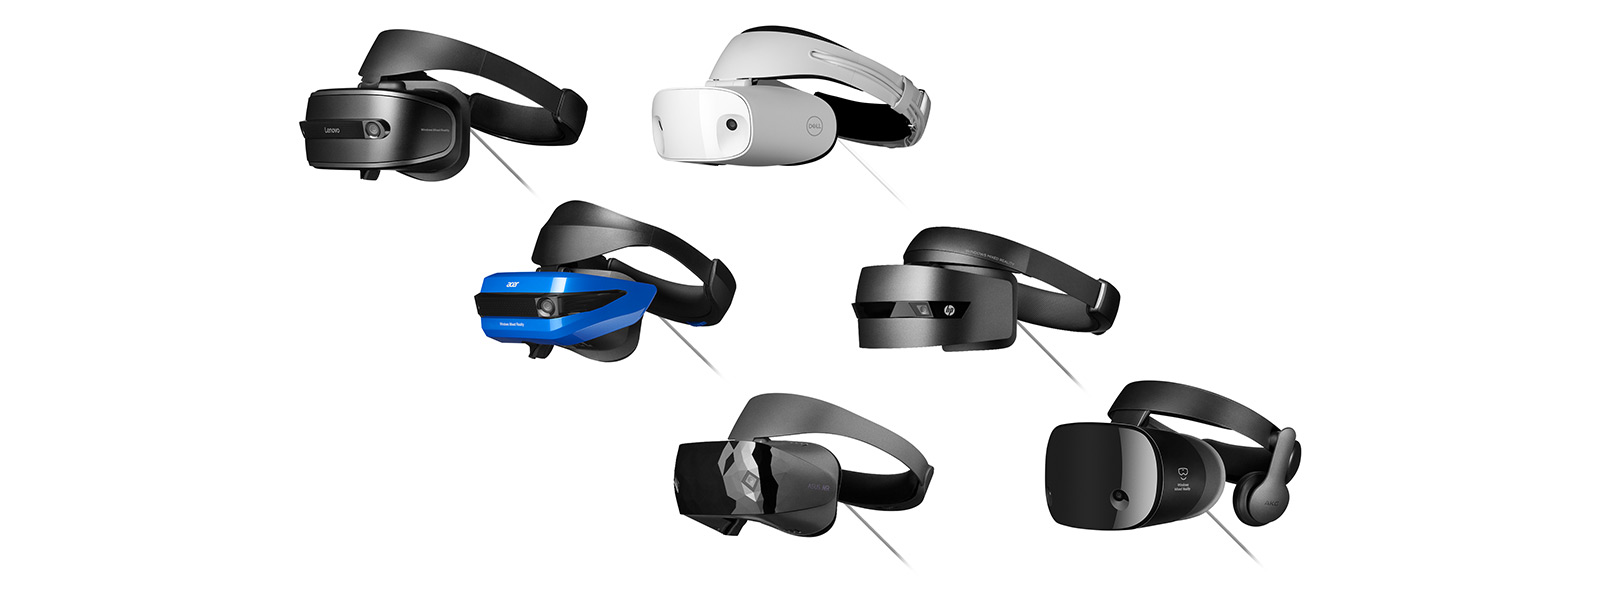 Family of Mixed Reality headsets